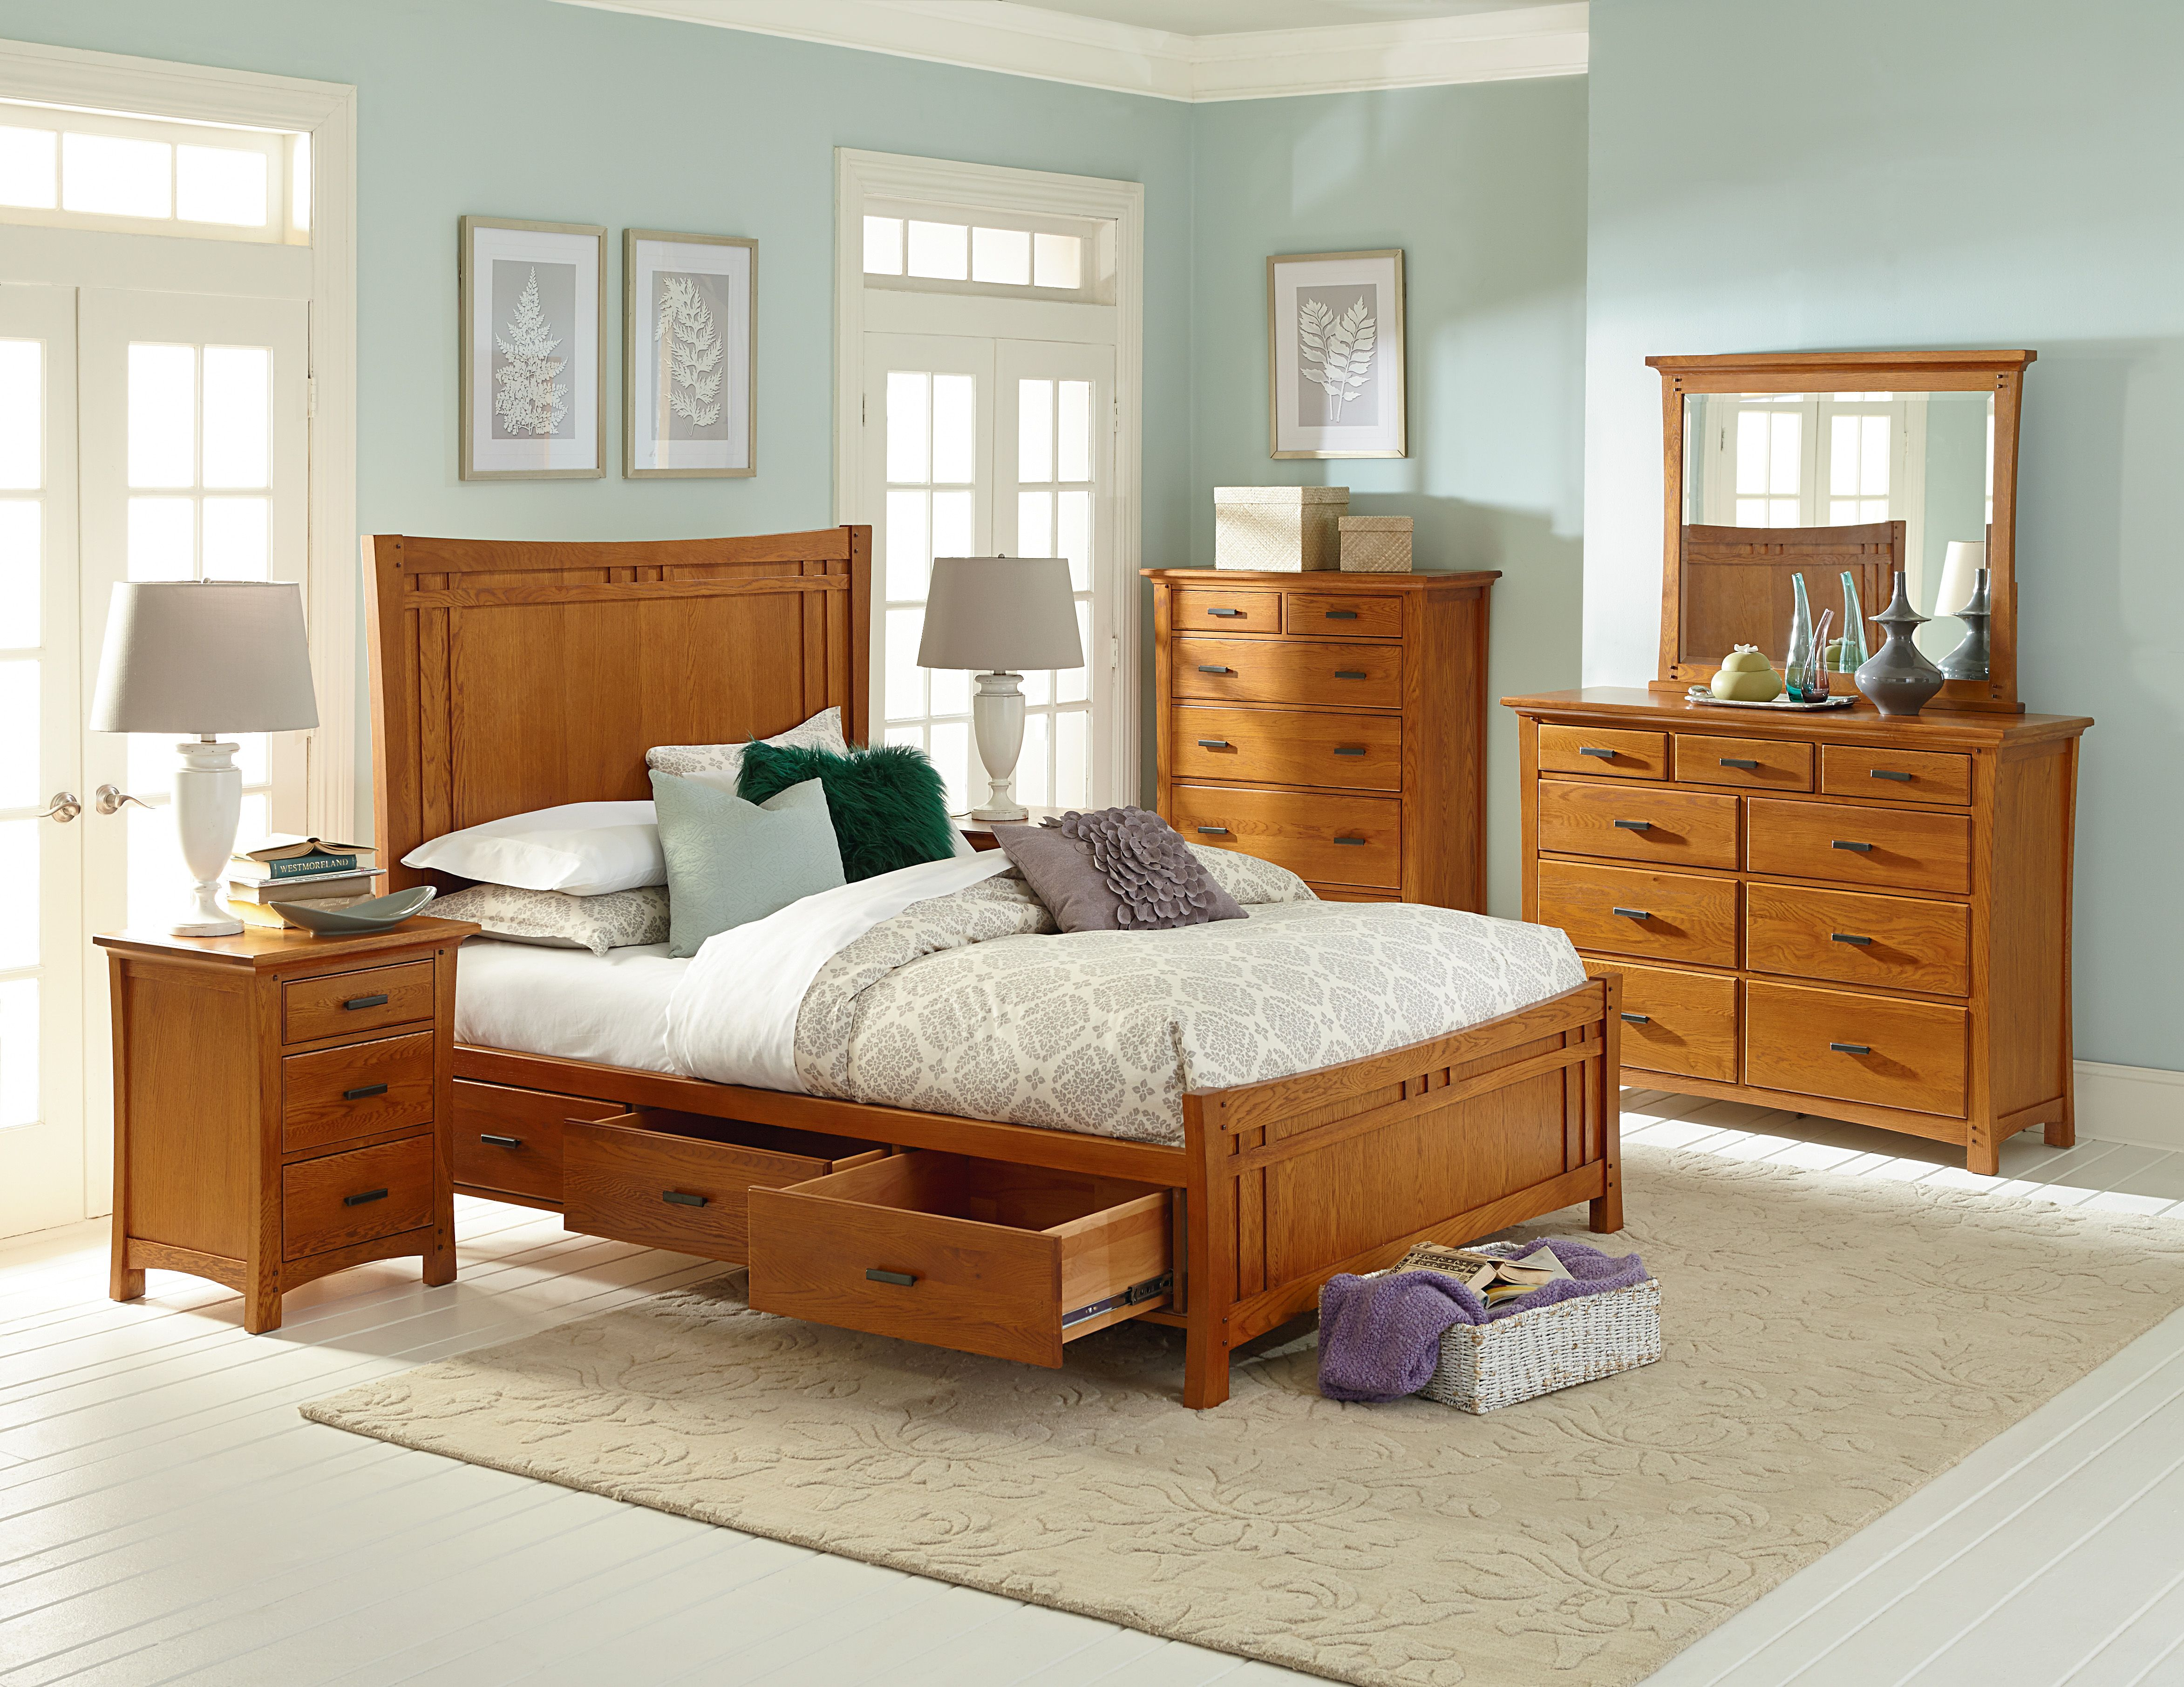 Luxurious Heritage Bedroom Collection That Will Be Treasured For Years To Come Solidwood Bedroom Furniture Modern Bedroom Furniture Wood Bedroom Sets